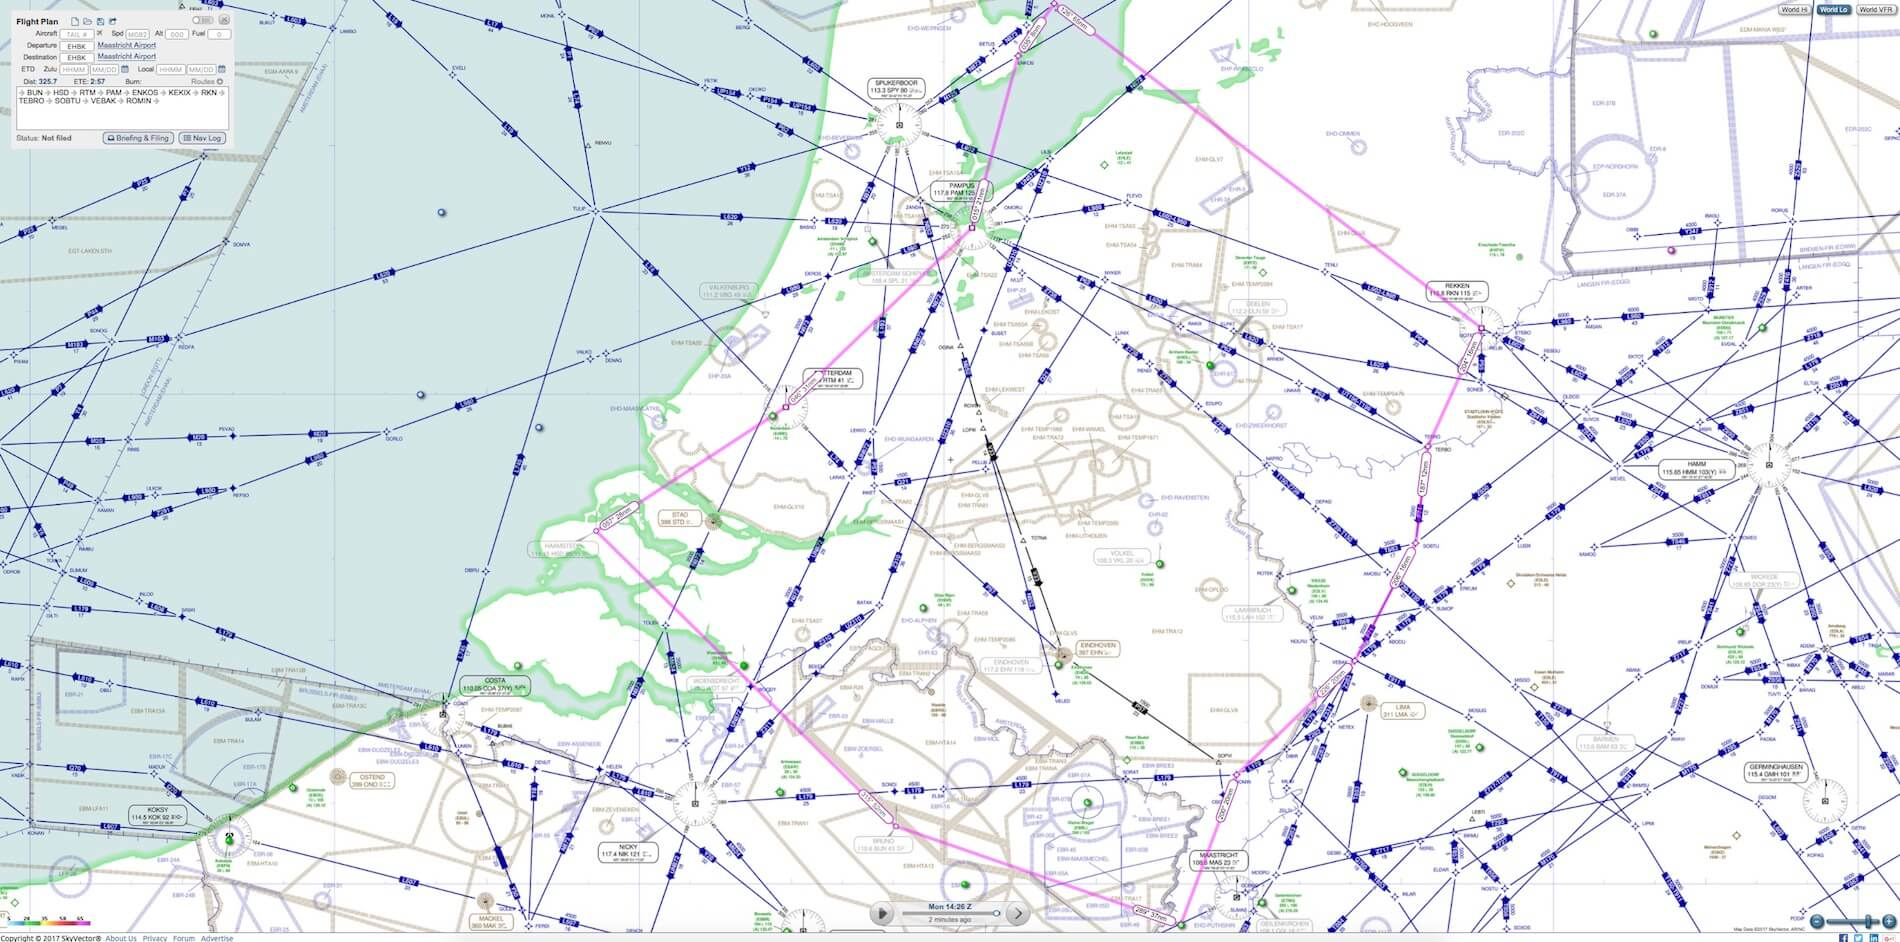 Skyvector flight vfr planning - Screenshots Ifr Map Vfr Map And The Ehbk Ehbk Fp Made With The Help Of Skyvector